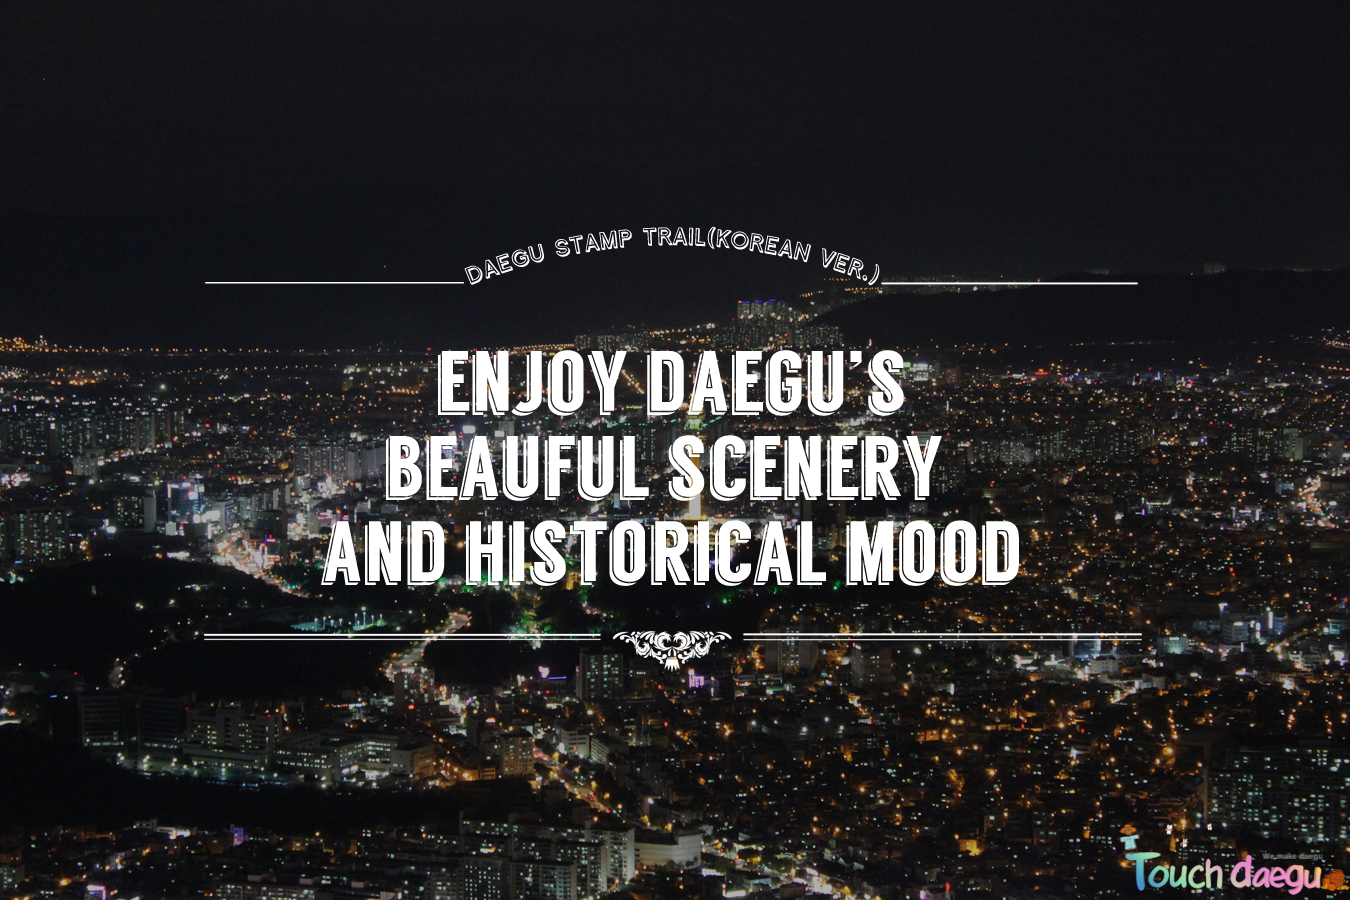 Enjoy Daegu's beautiful scenery and historical mood with Daegu stamp trail!